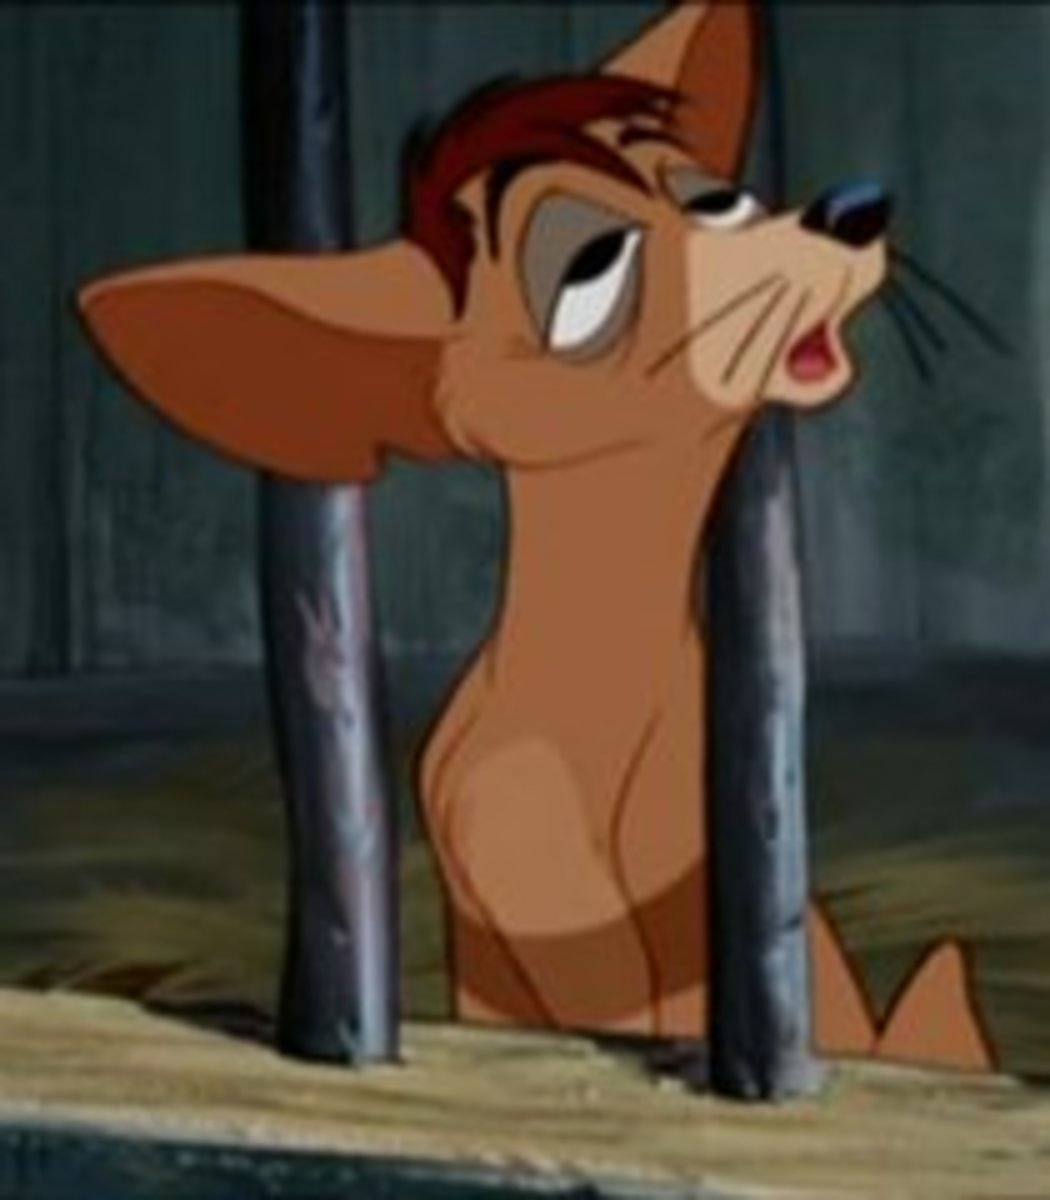 Pedro from Lady and the Tramp.